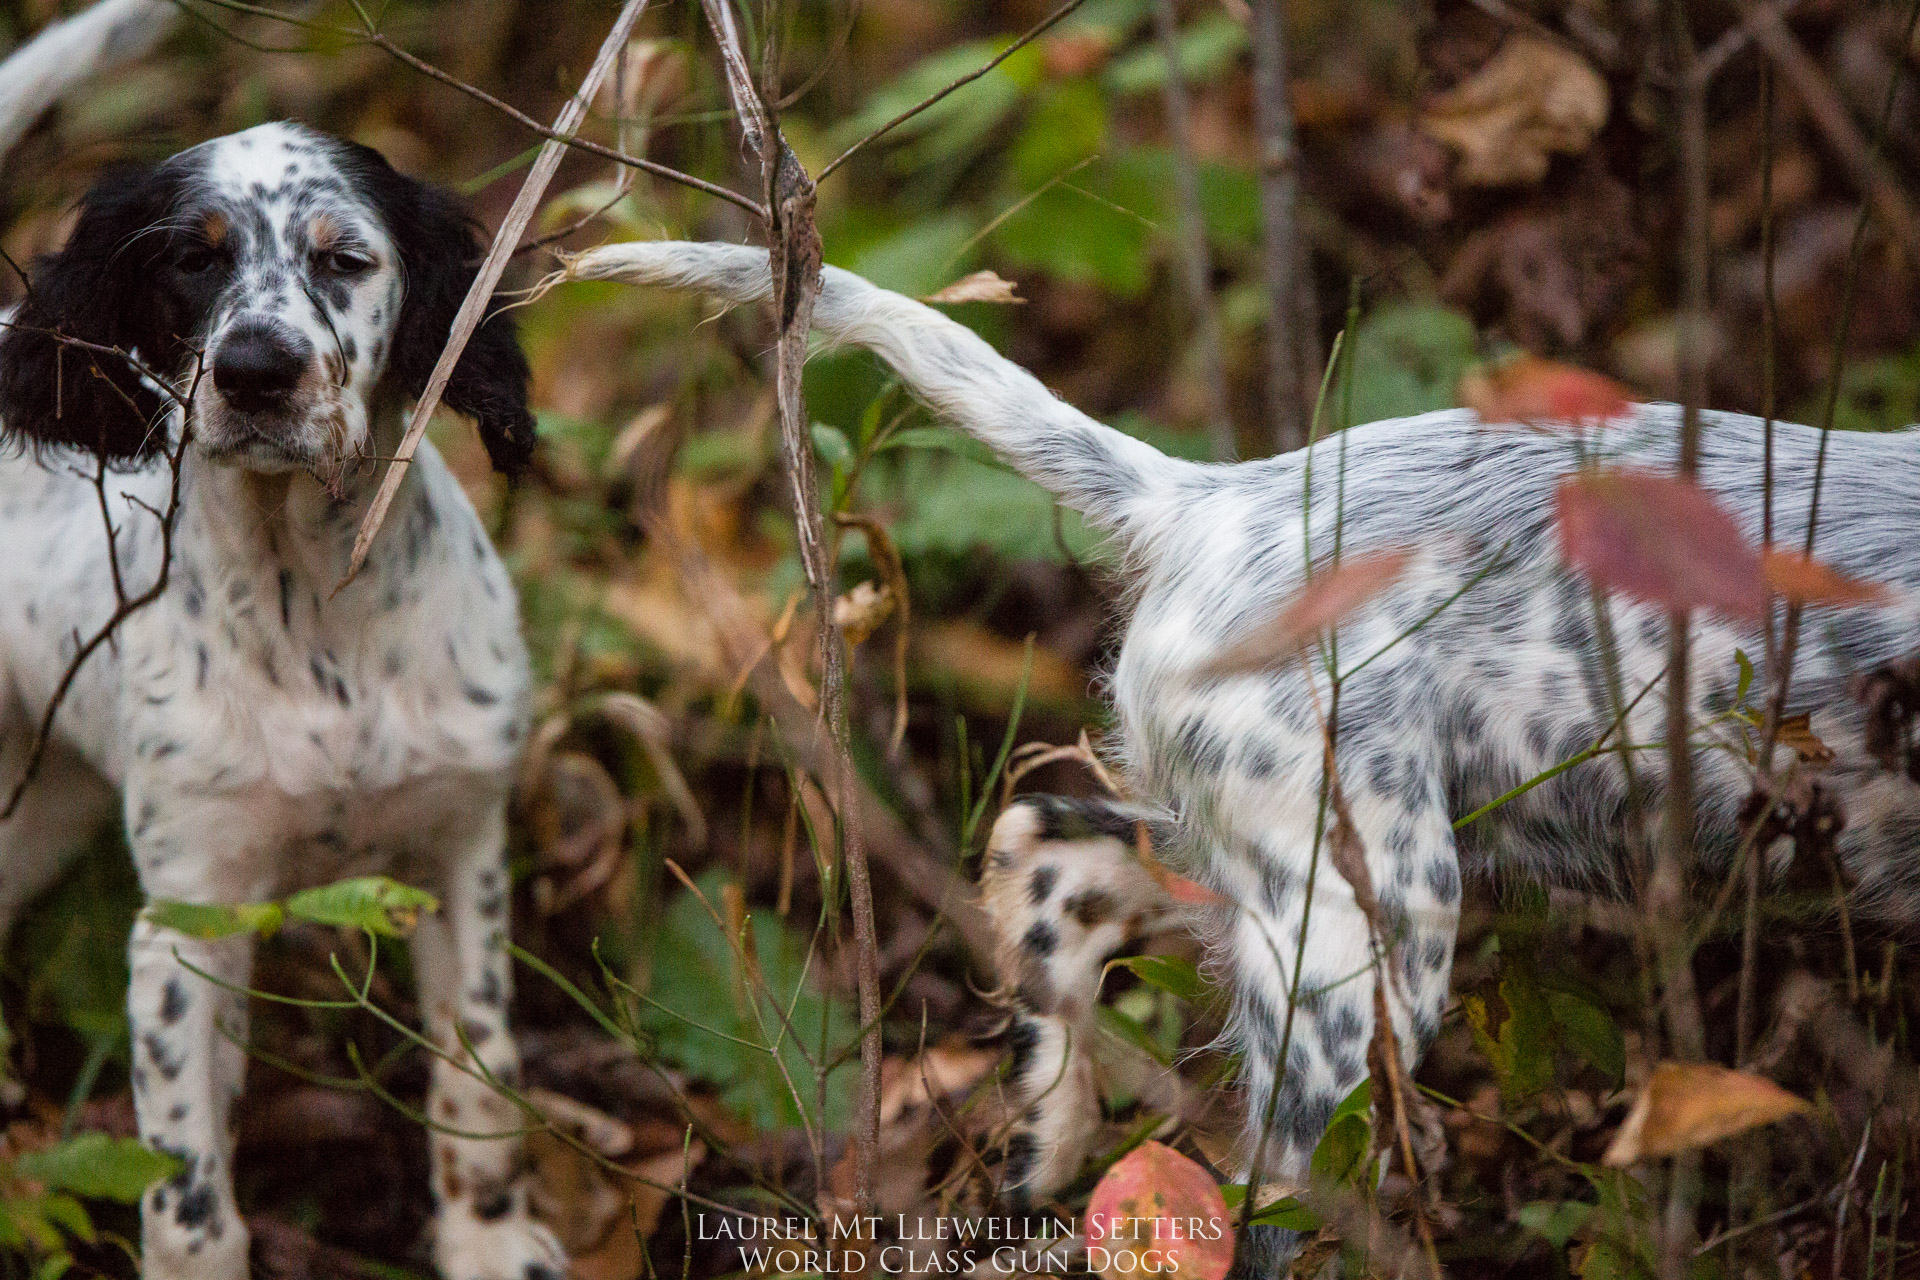 Laurel Mt Llewellin Setter Puppy, Willow